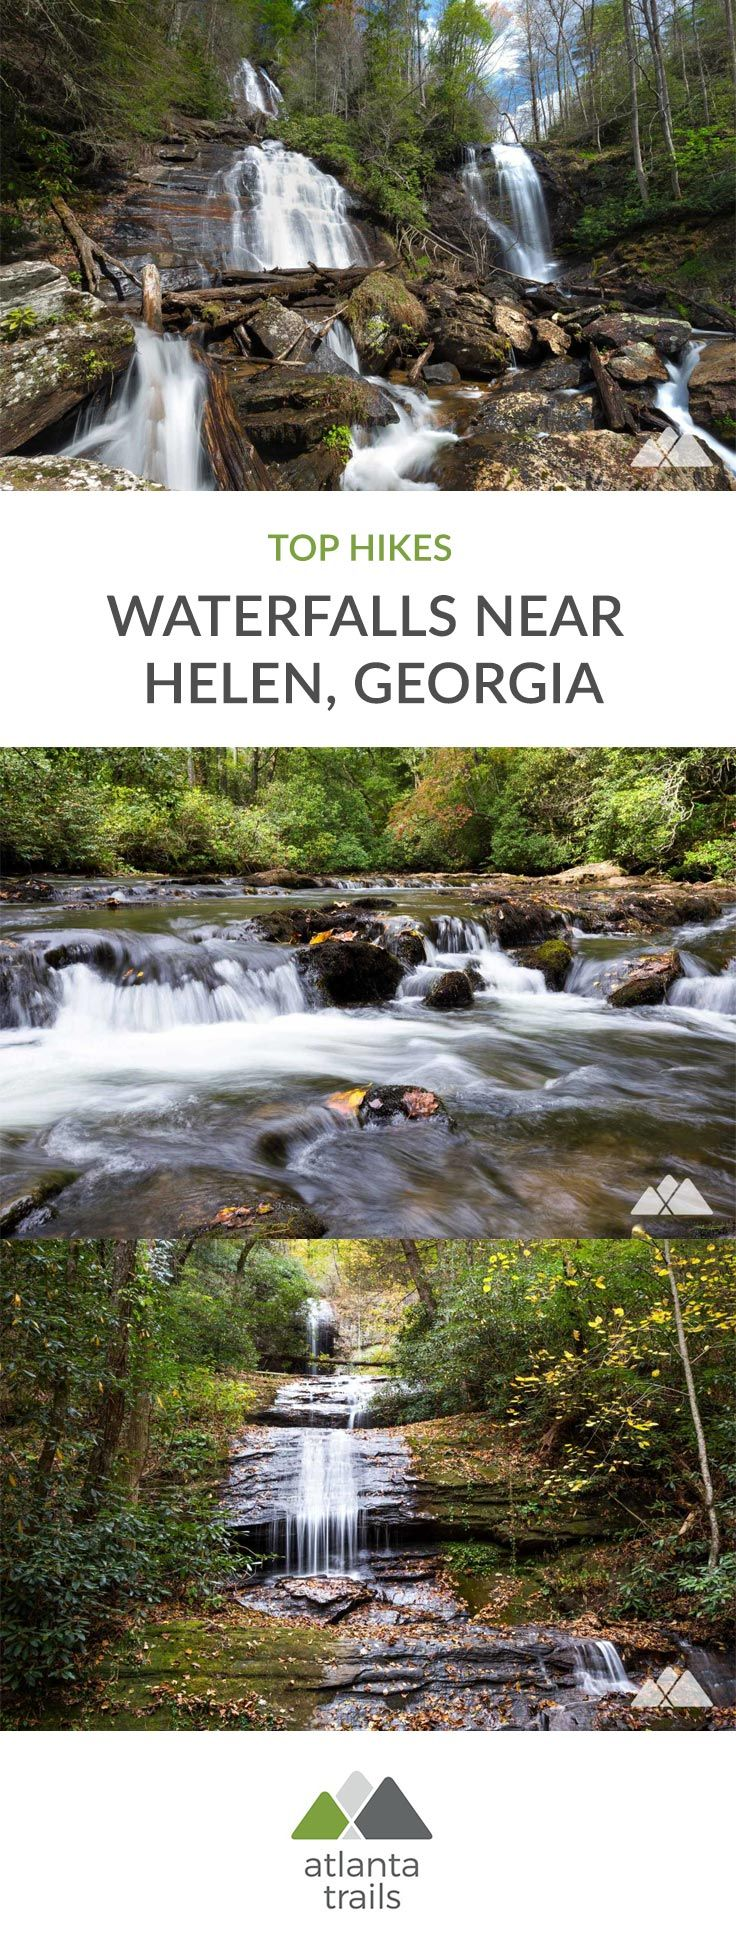 Hike these scenic trails to our favorite waterfalls near Georgia's alpine mountain town of Helen, exploring wildflower-filled creek valleys, tumbling waterfalls, and rocky, mossy forests.